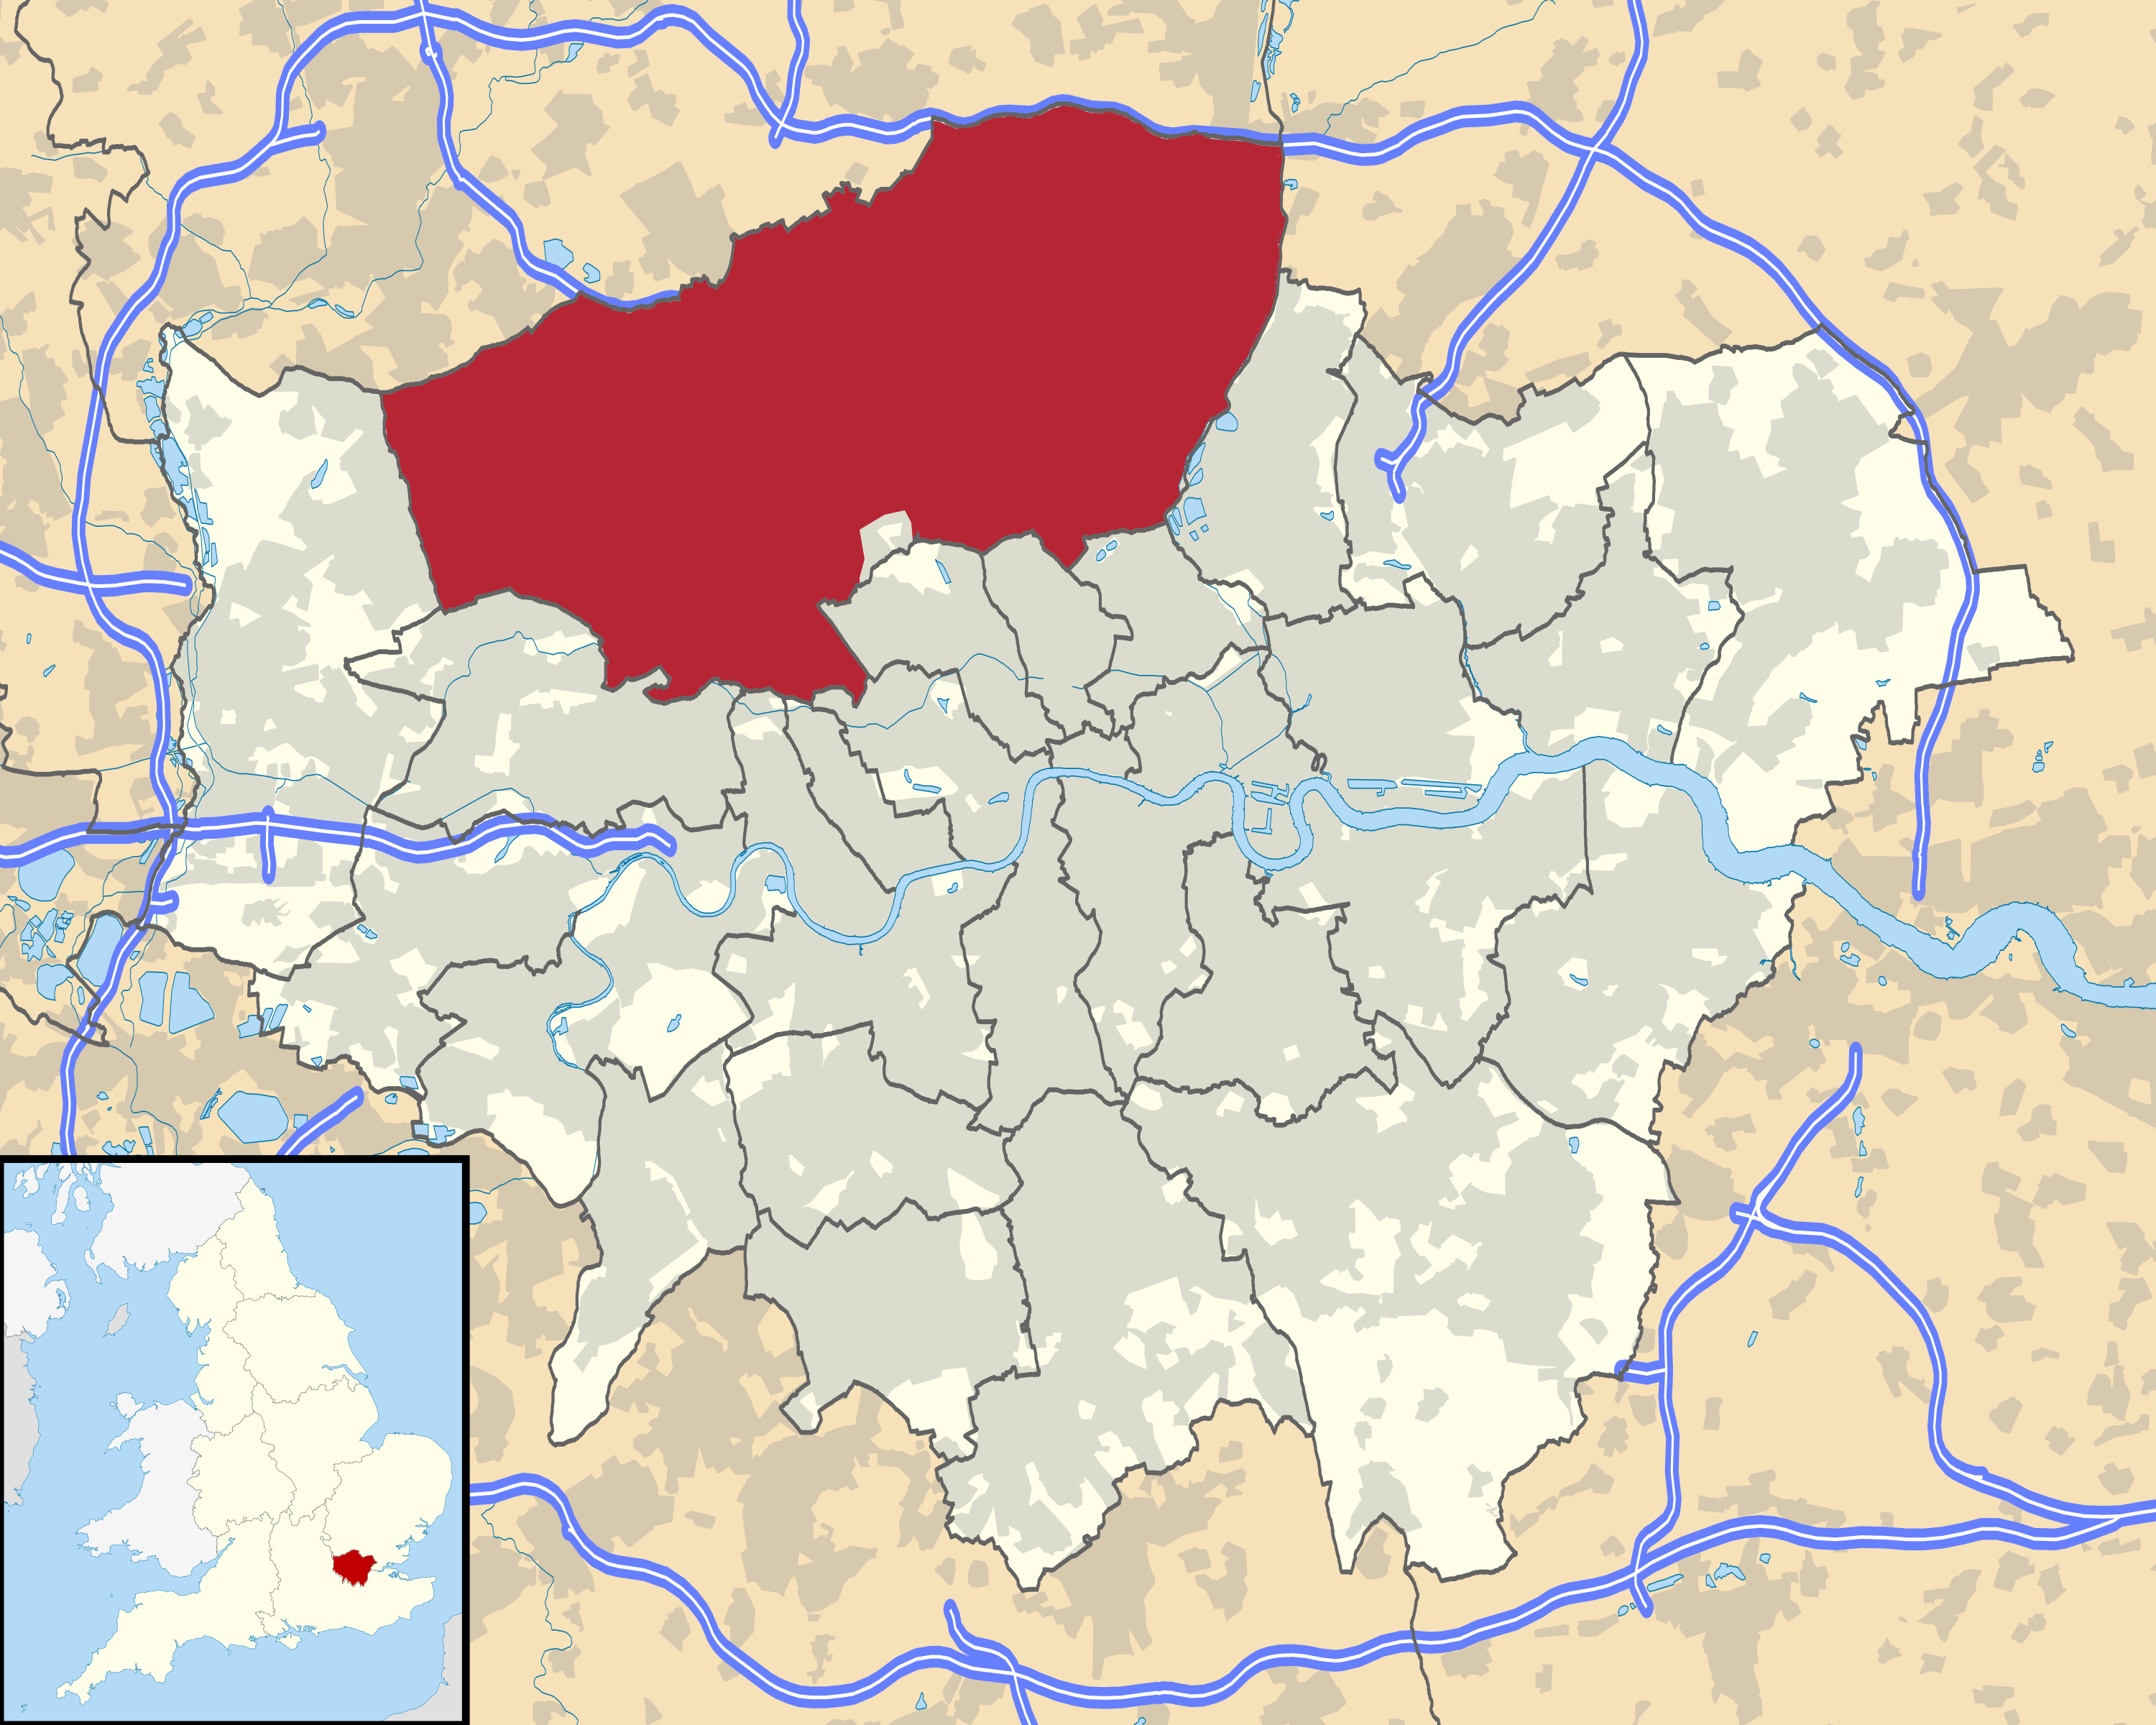 North Of London Map.File London Wikivoyage City Regions Maps North London Png